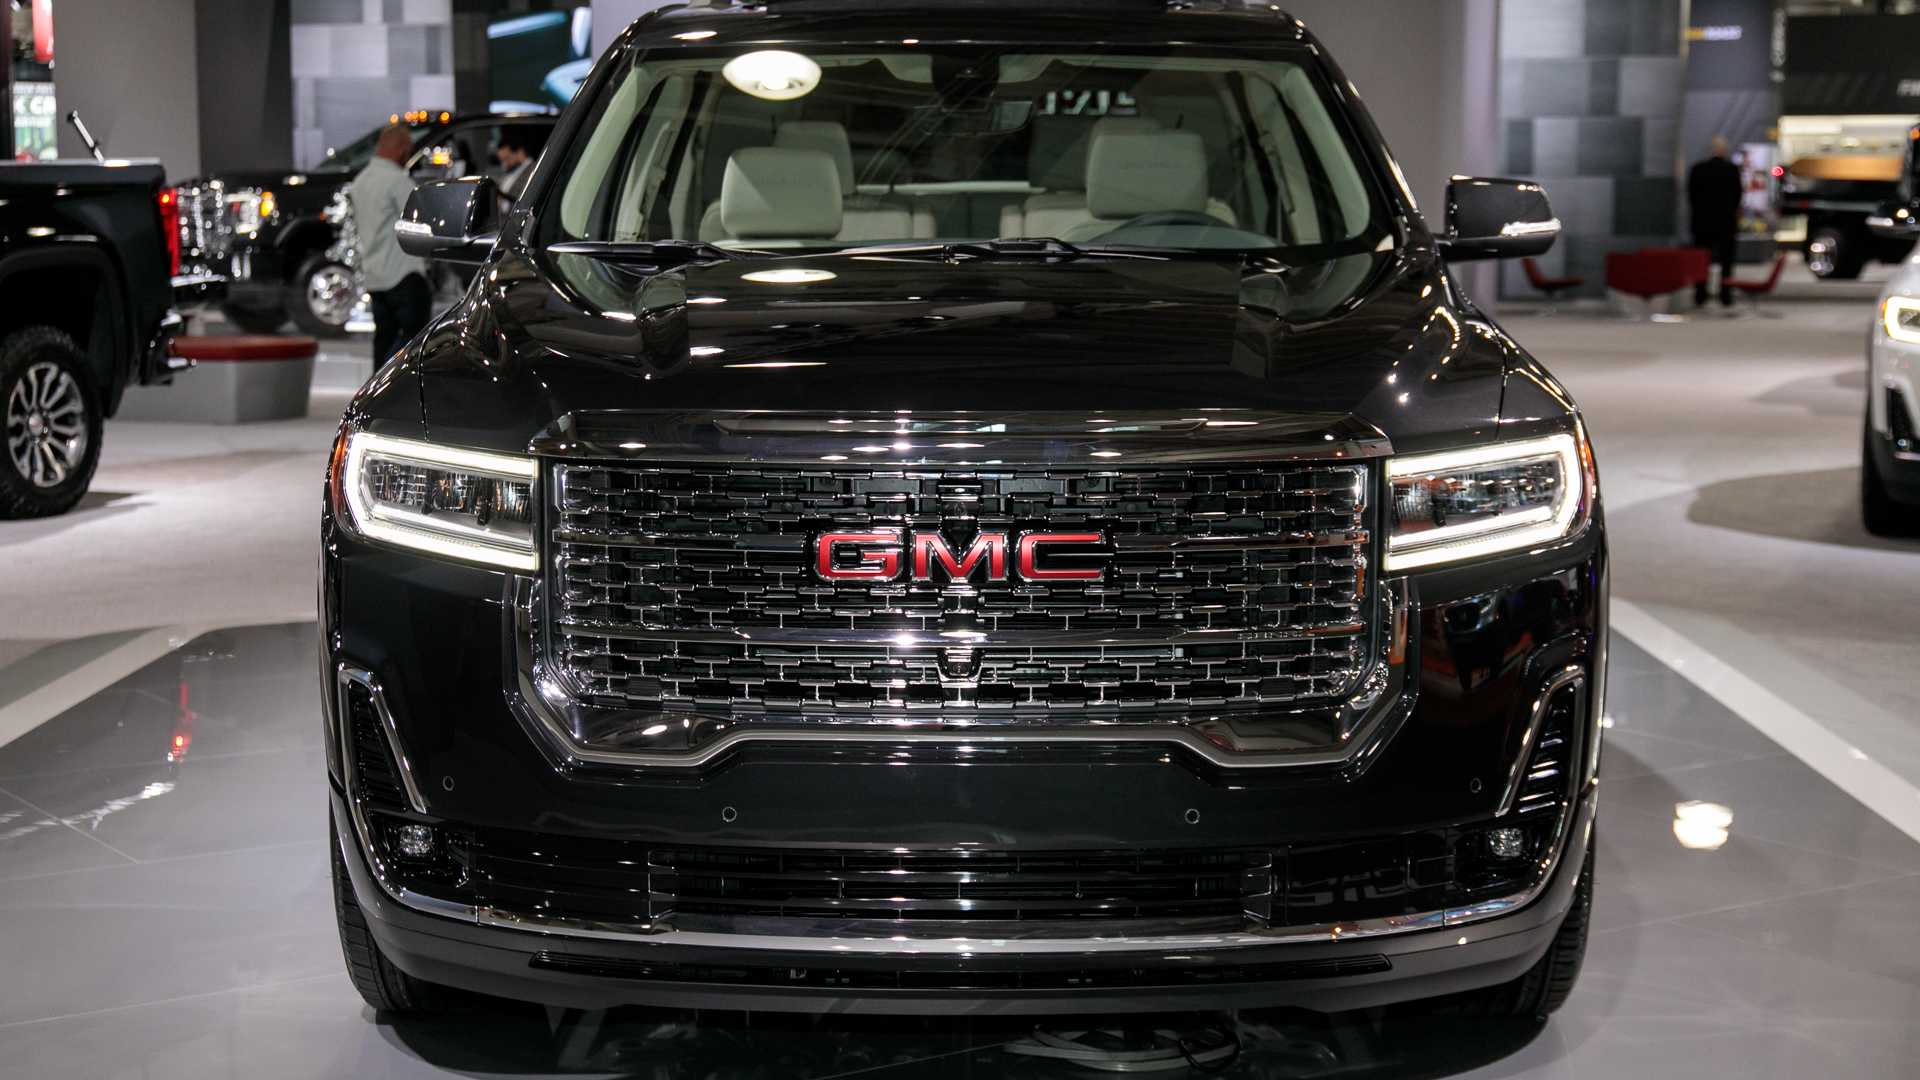 2020 Gmc Acadia Refresh Revealed With New Turbo 2 0l Engine